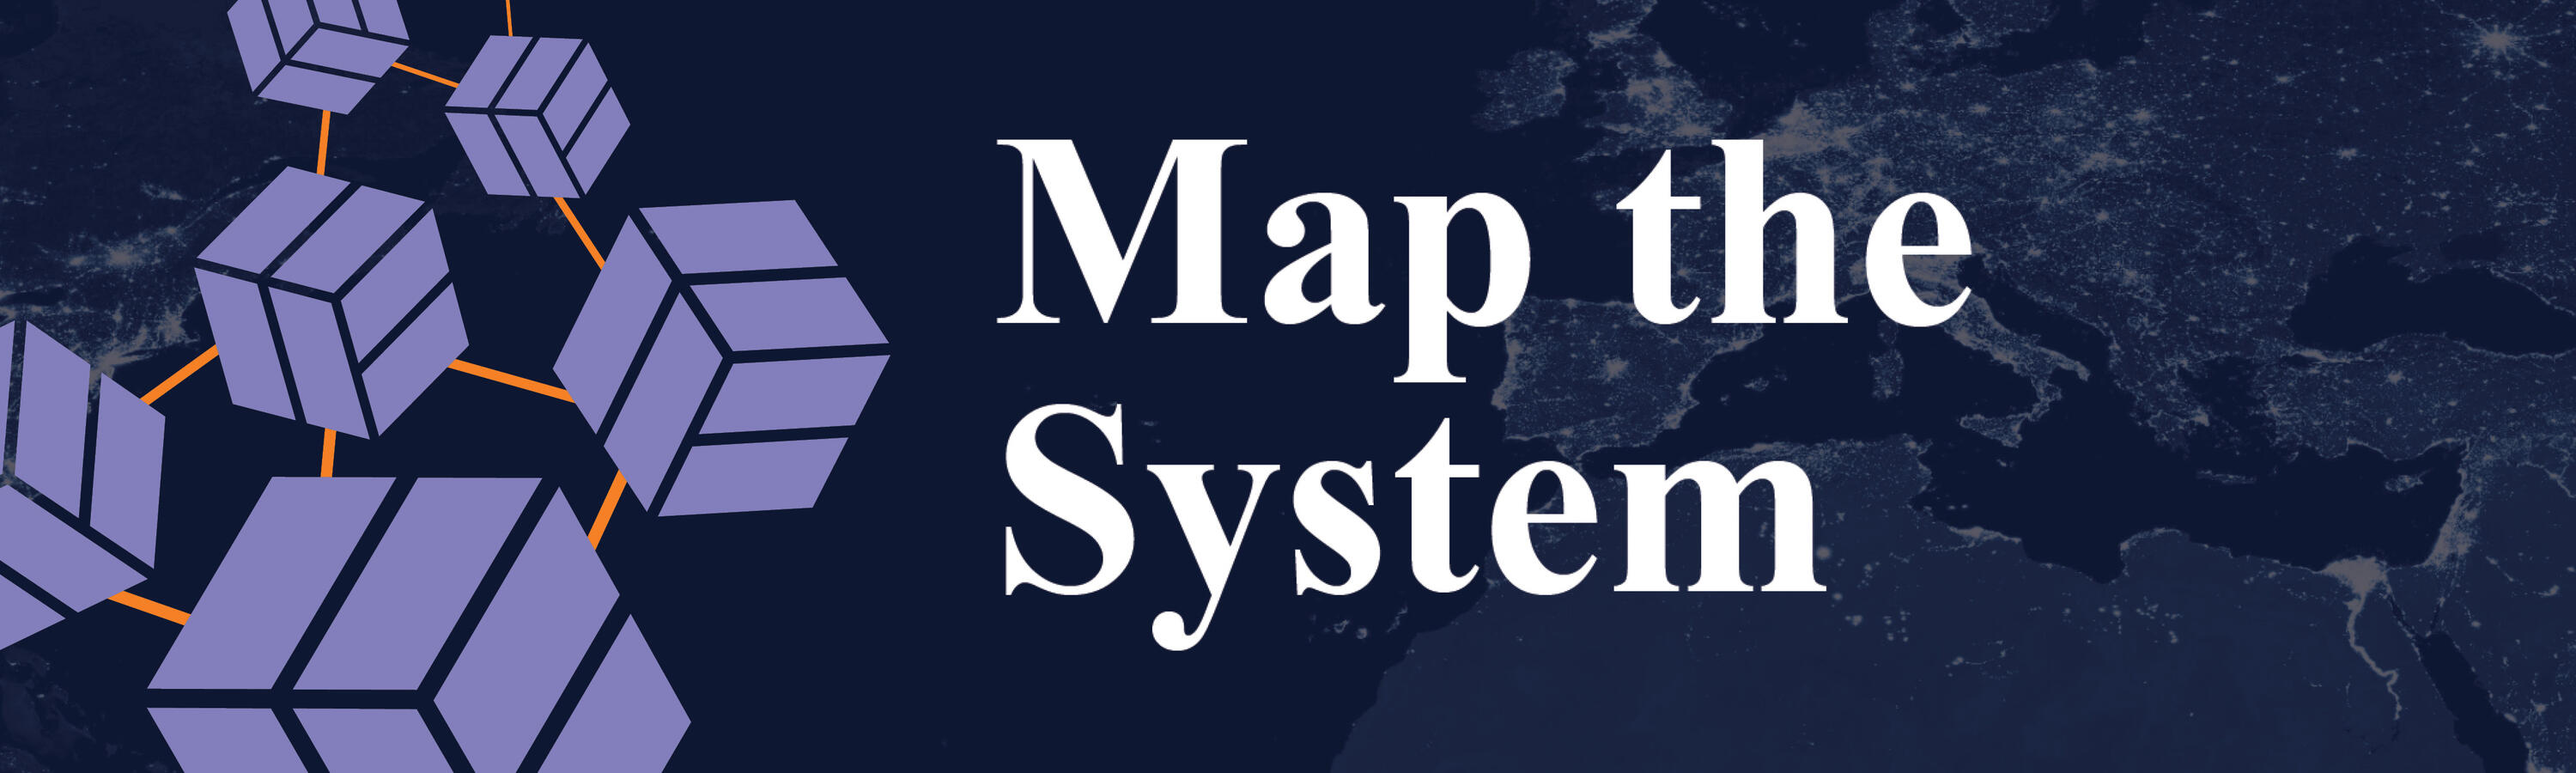 Map the System banner